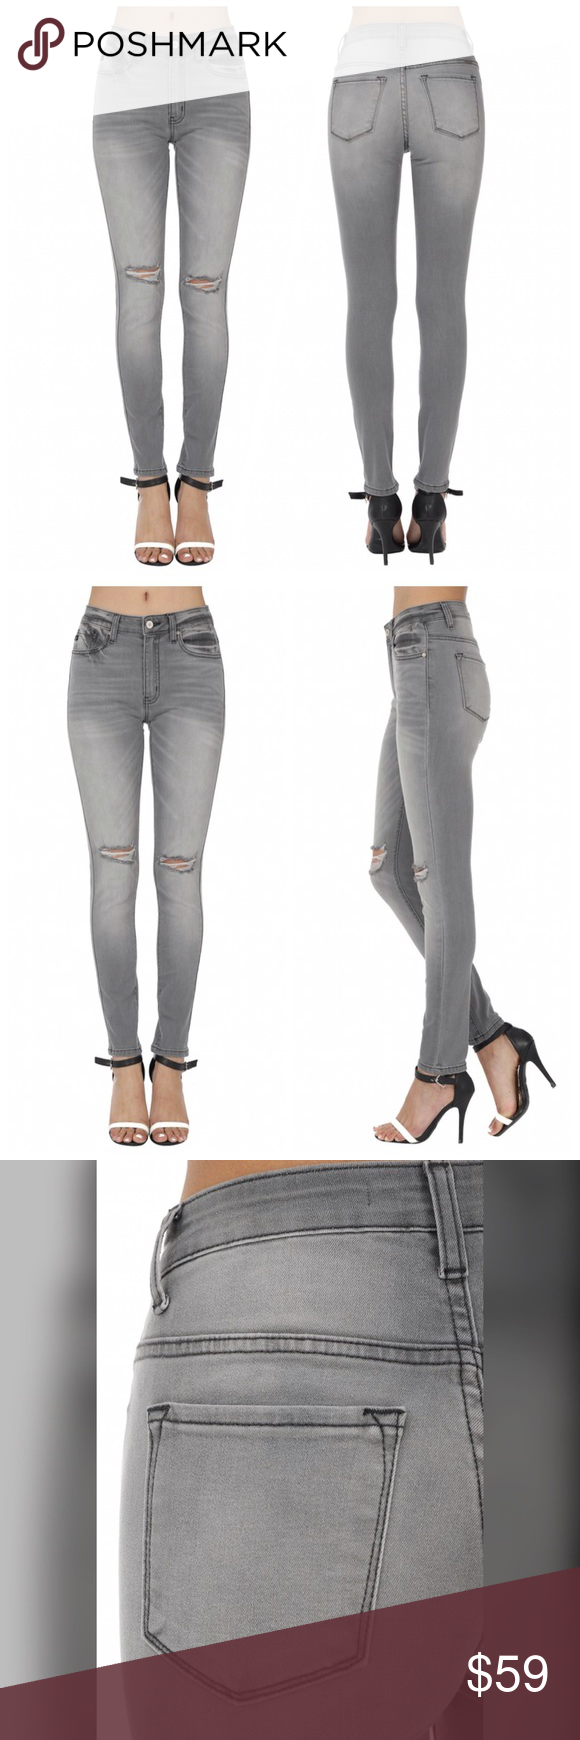 Kancan Jeans High Rise Faded Gray Size 27 84 9 Cotton Algodon 14 Polyester Poliester 1 1 Spandex Elastano Ris Clothes Design High Jeans Fashion Design